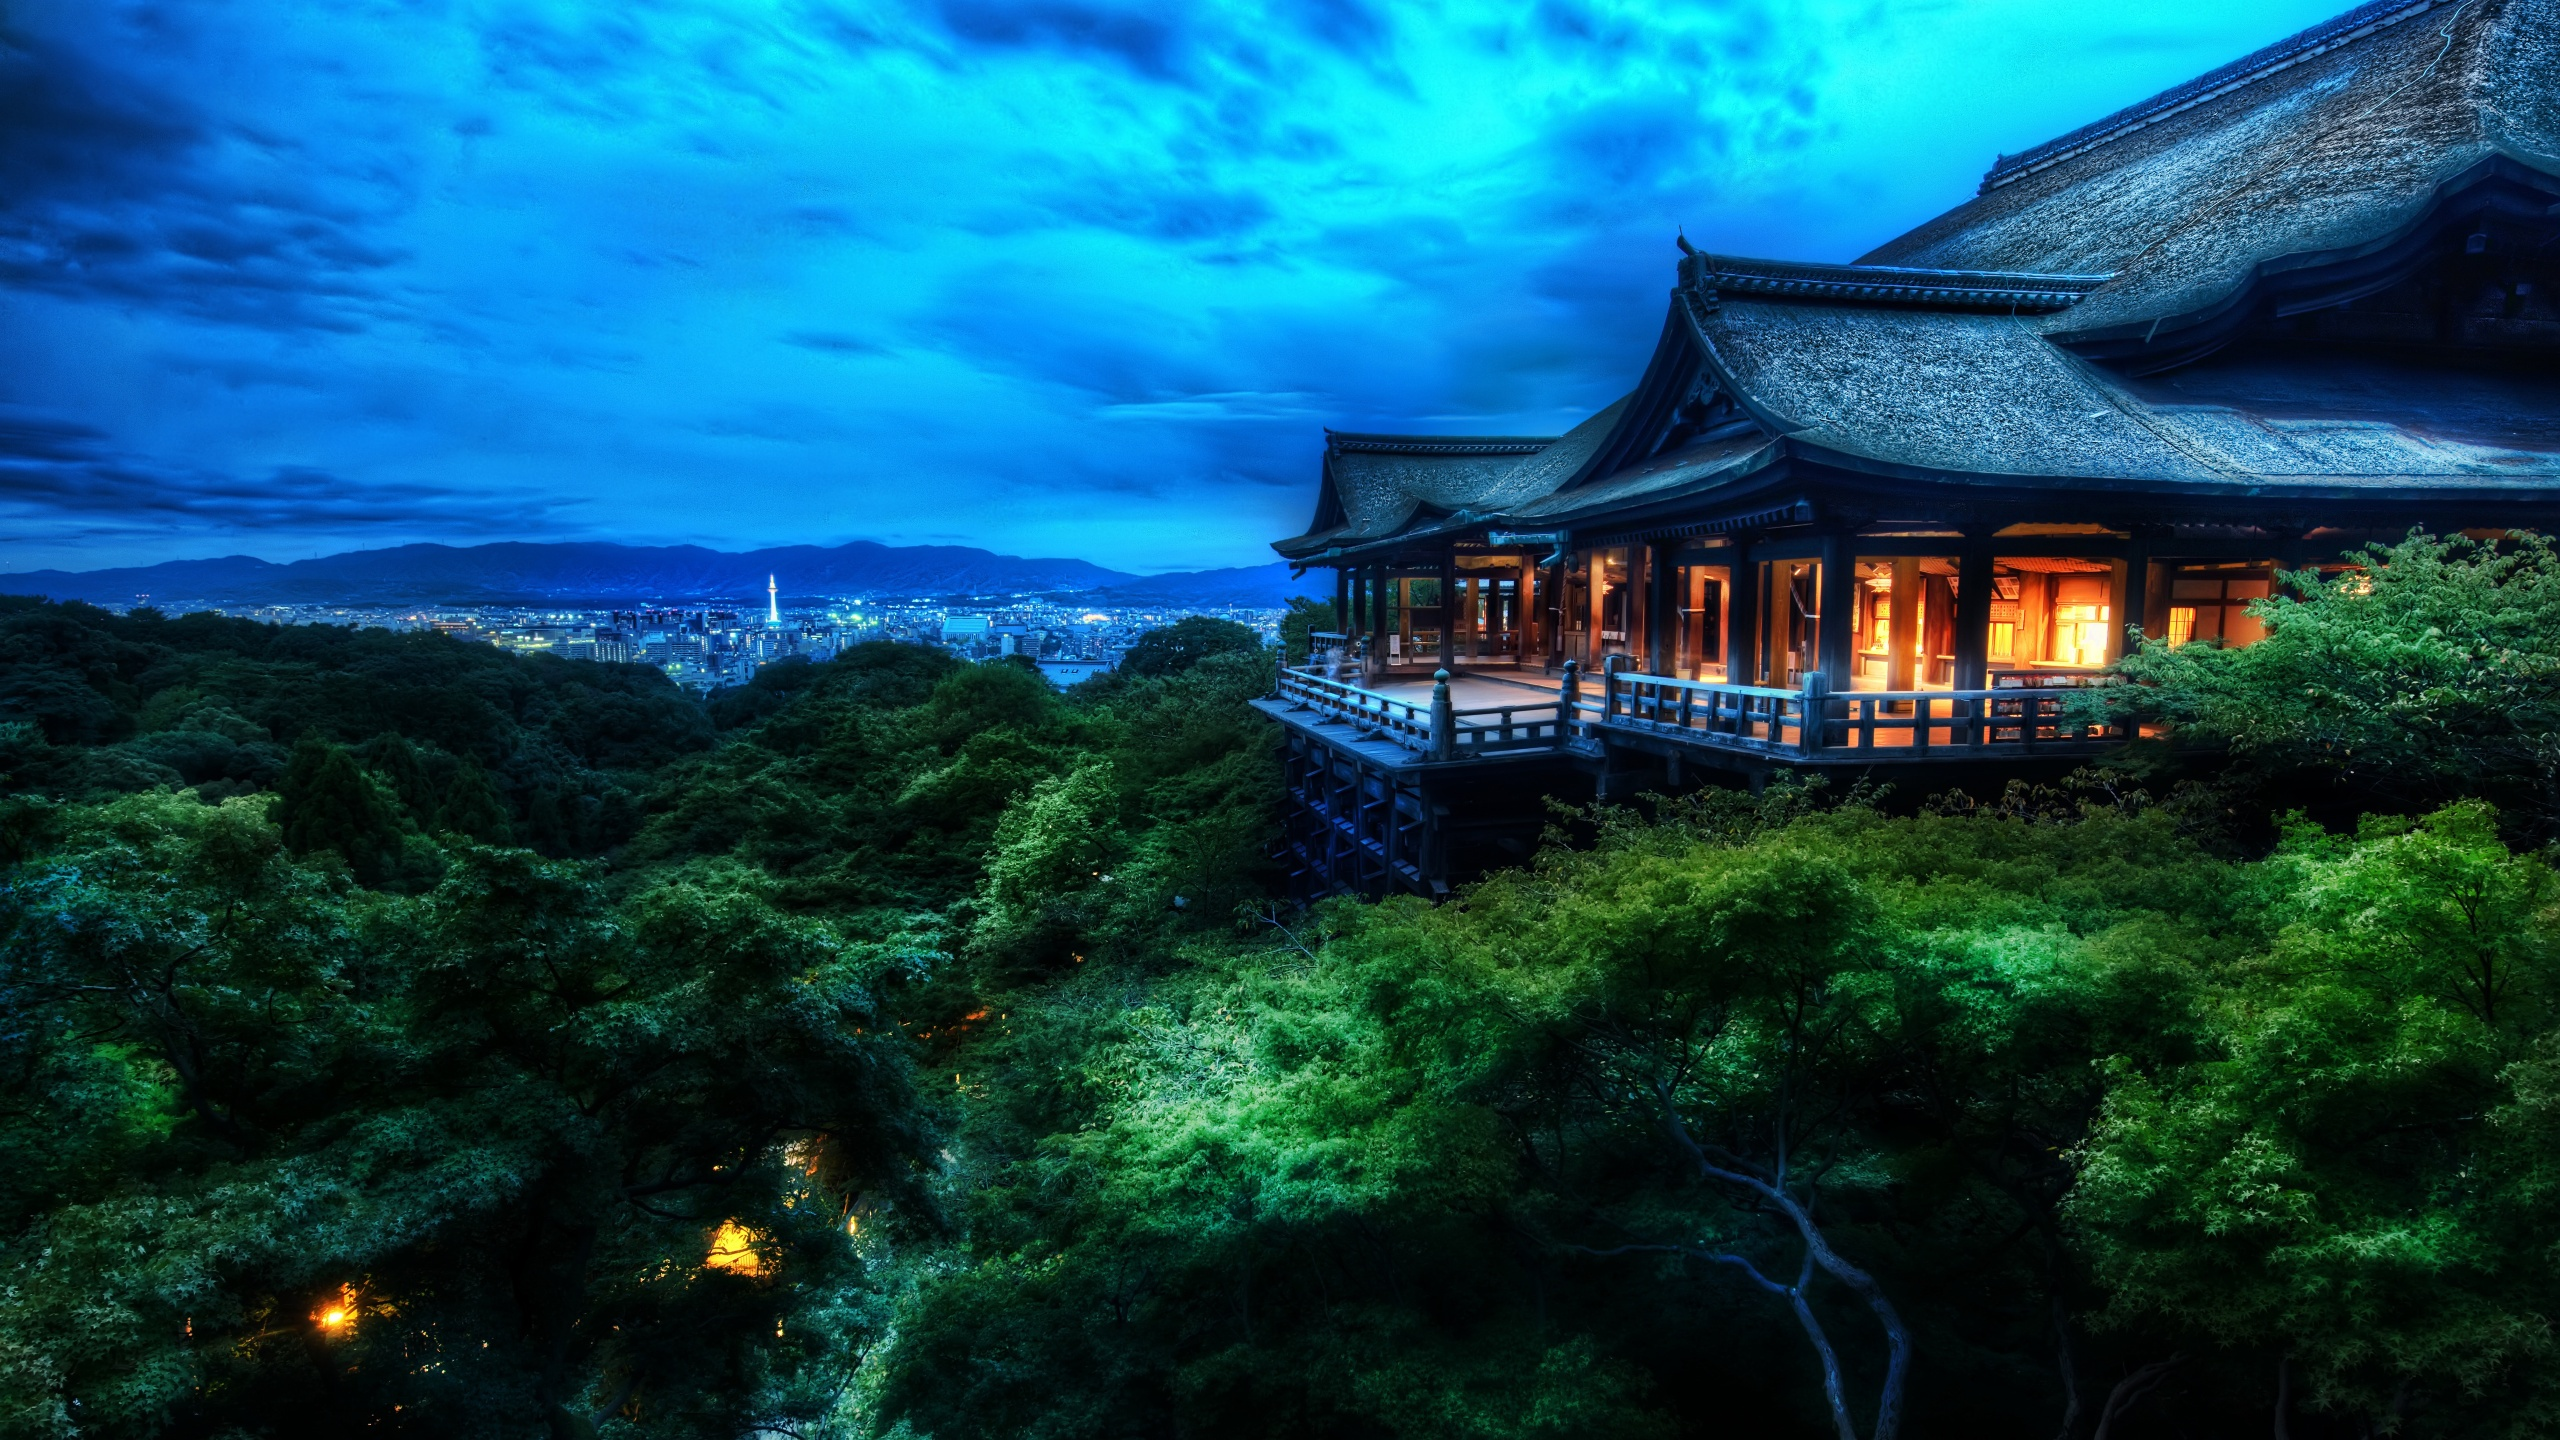 The Treetop Temple Protects Kyoto Japan Desktop PC And Mac Wallpaper